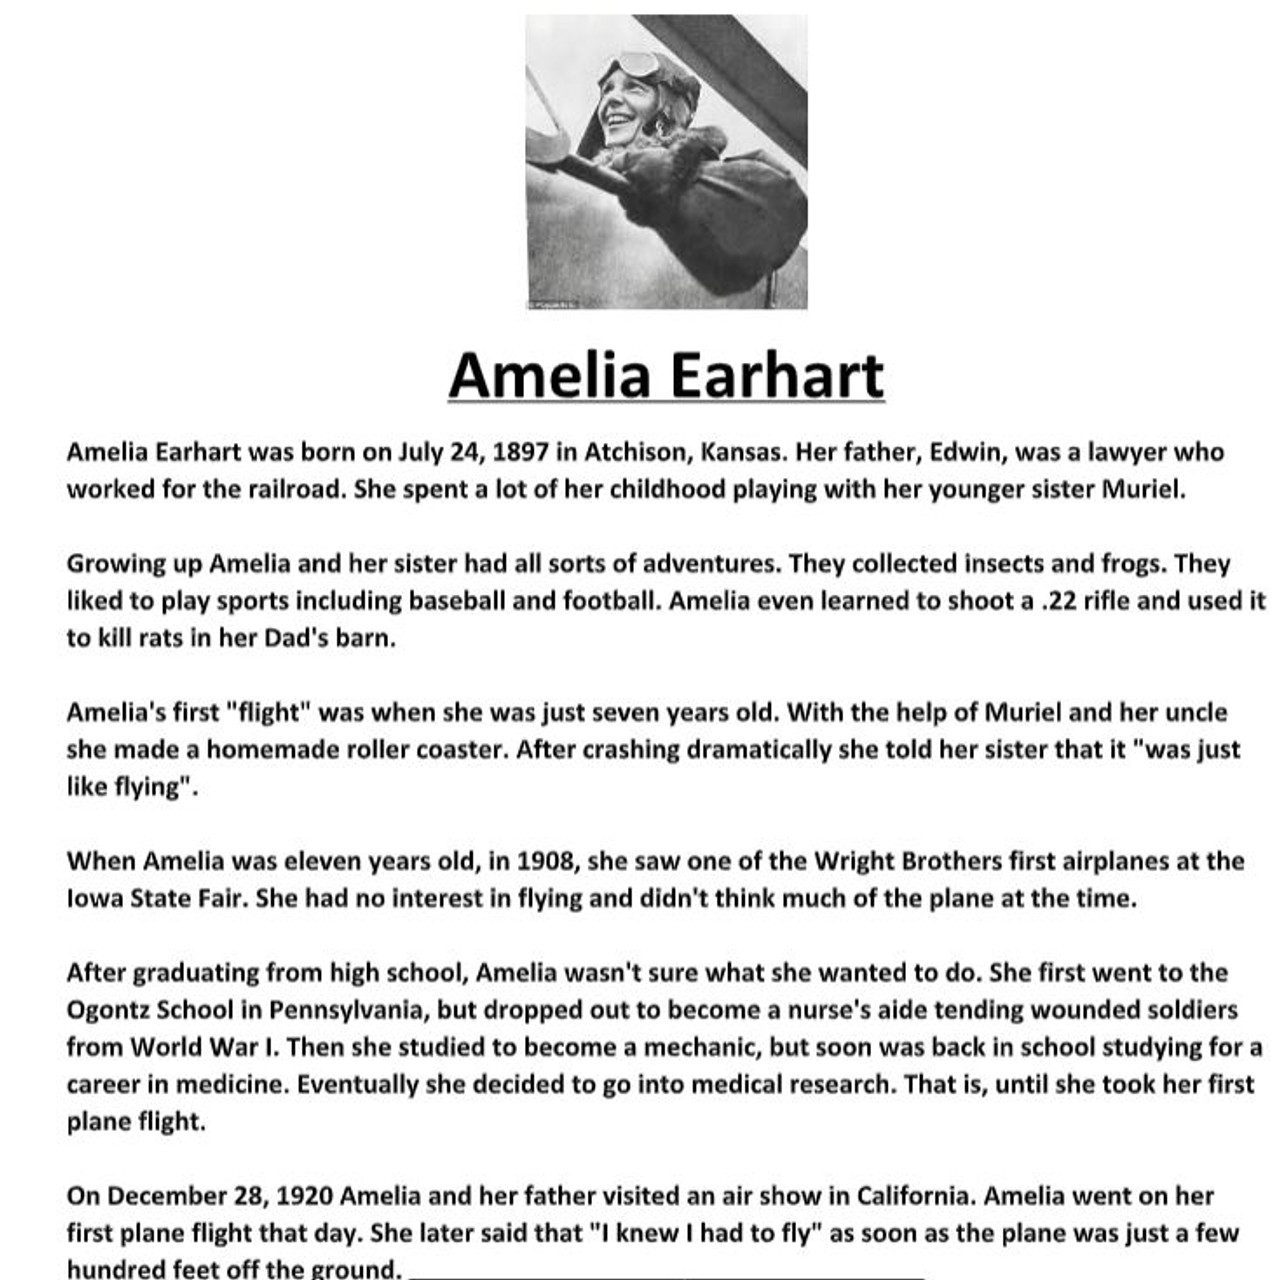 Amelia Earhart Biography and Assignment Worksheet - Amped Up Learning [ 1280 x 1275 Pixel ]